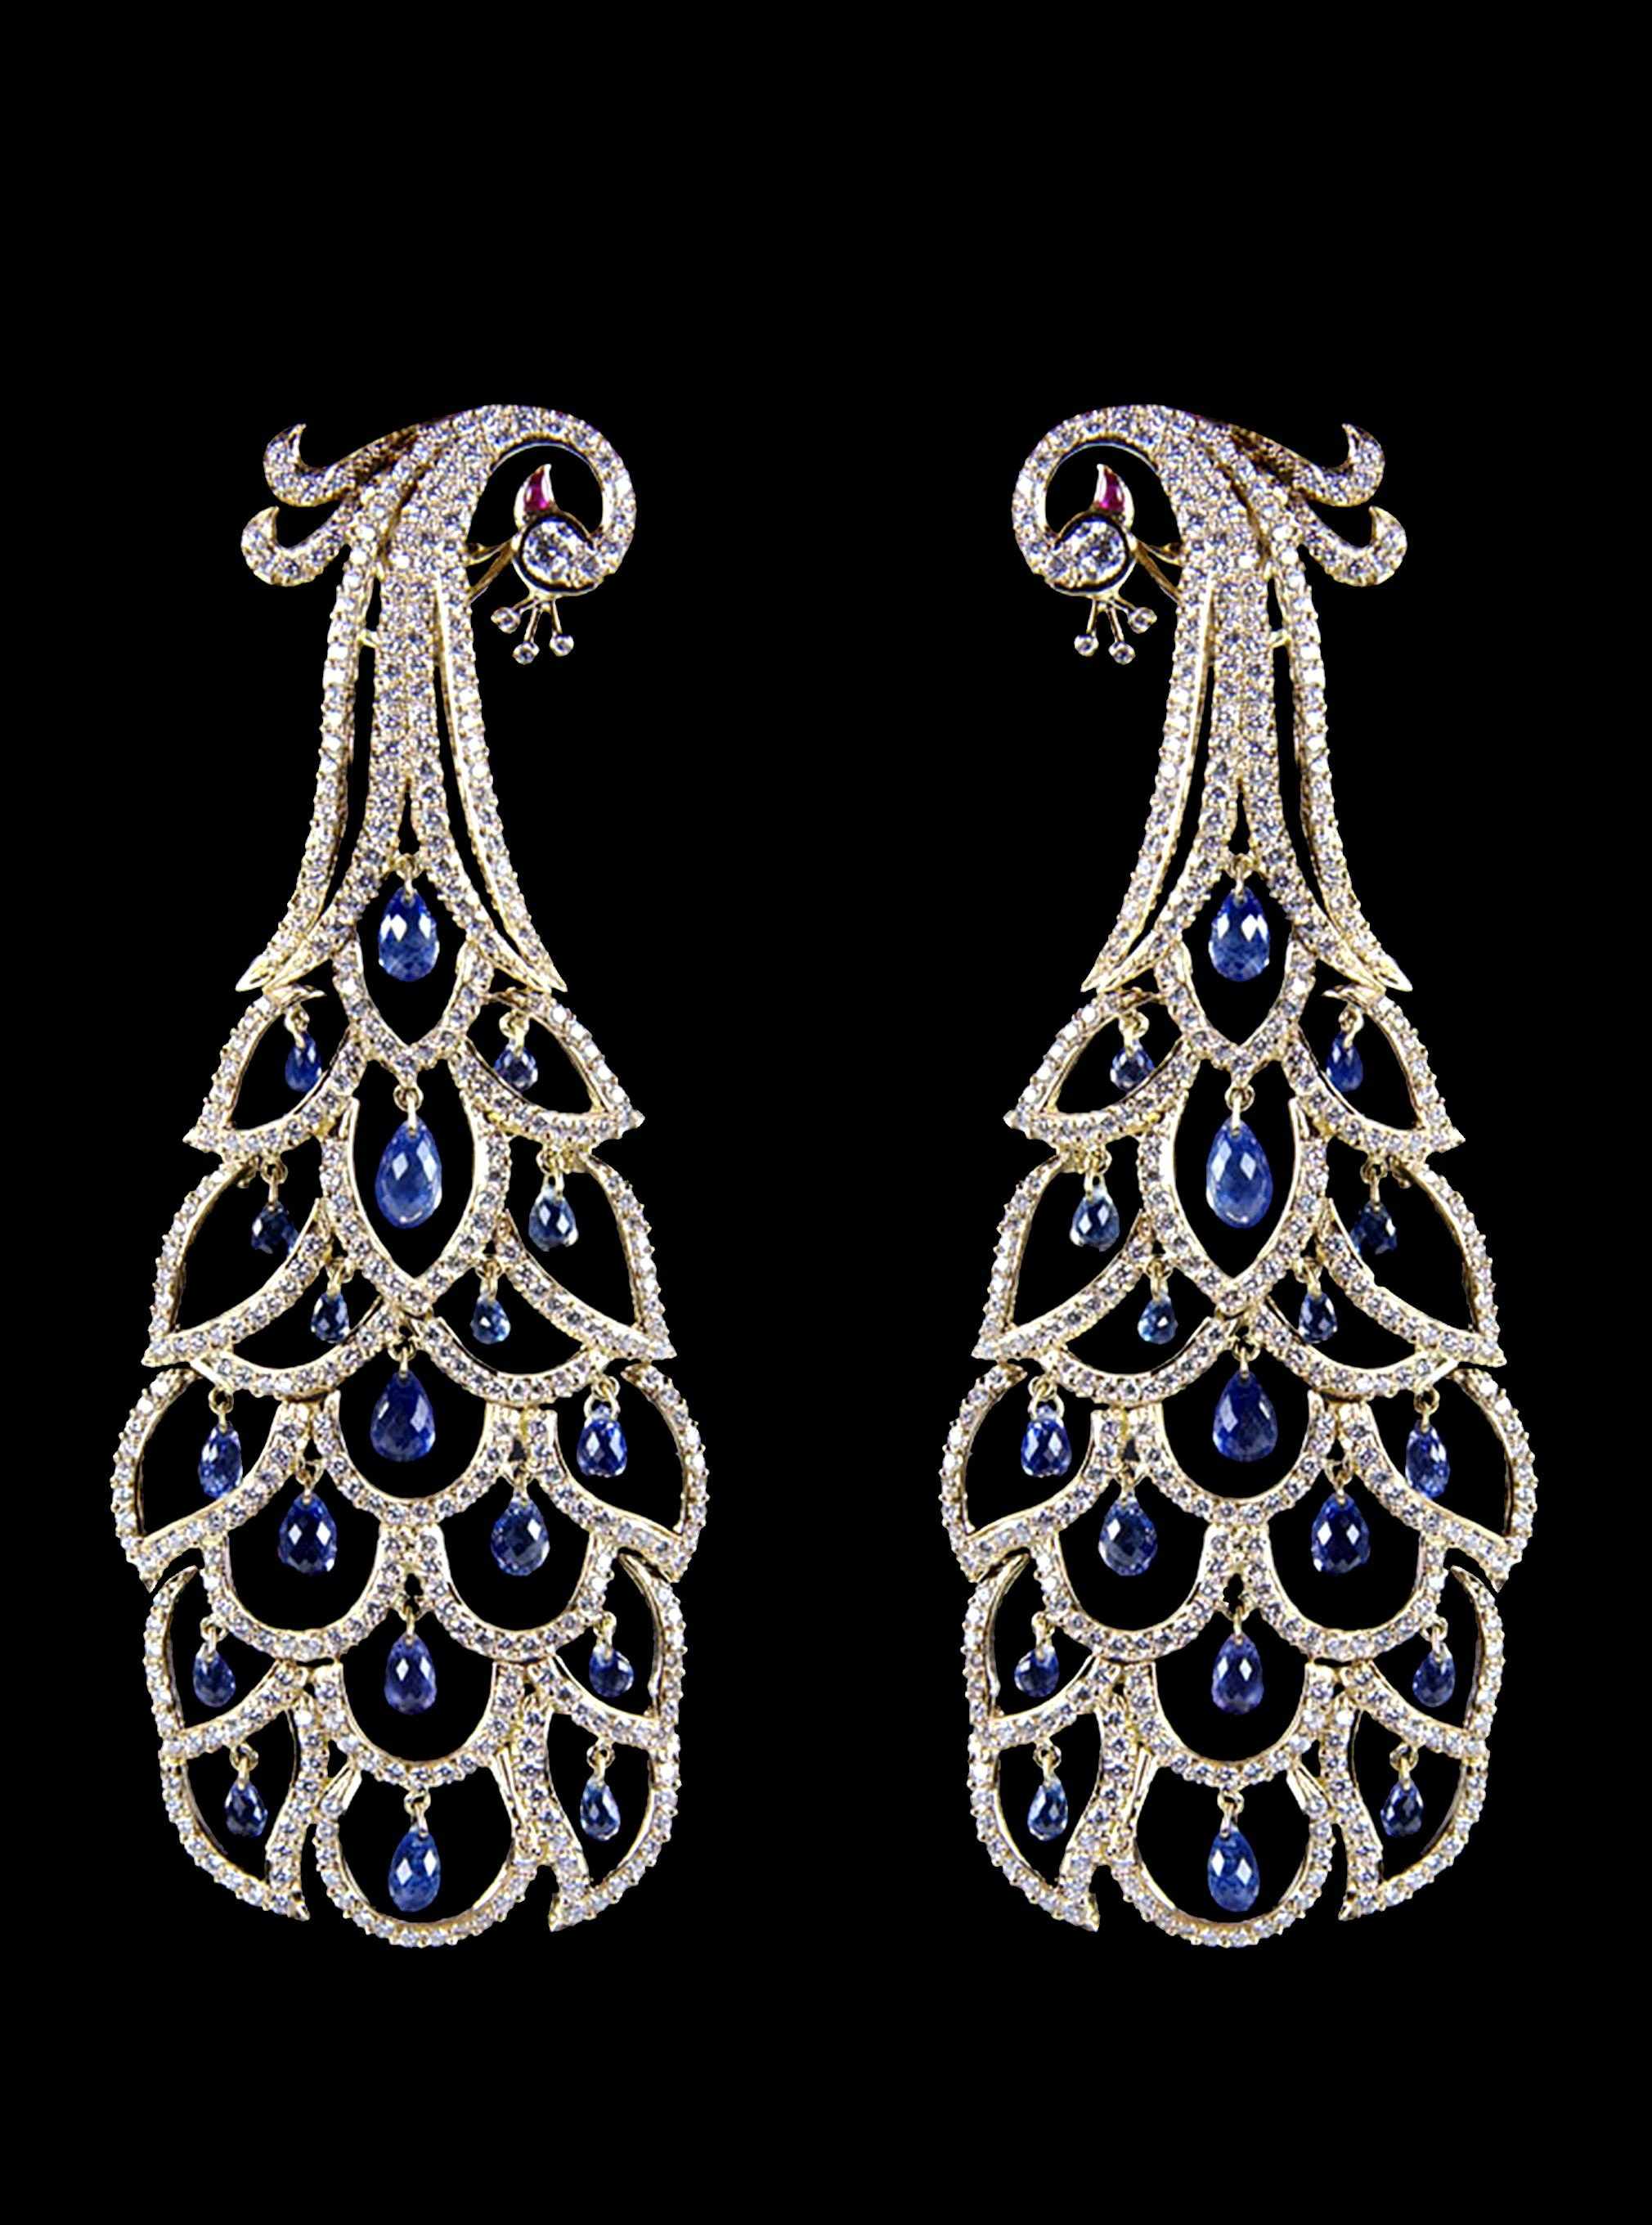 diamonds hanging with sapphire earrings cut brilliant cts pin briolette amethysts